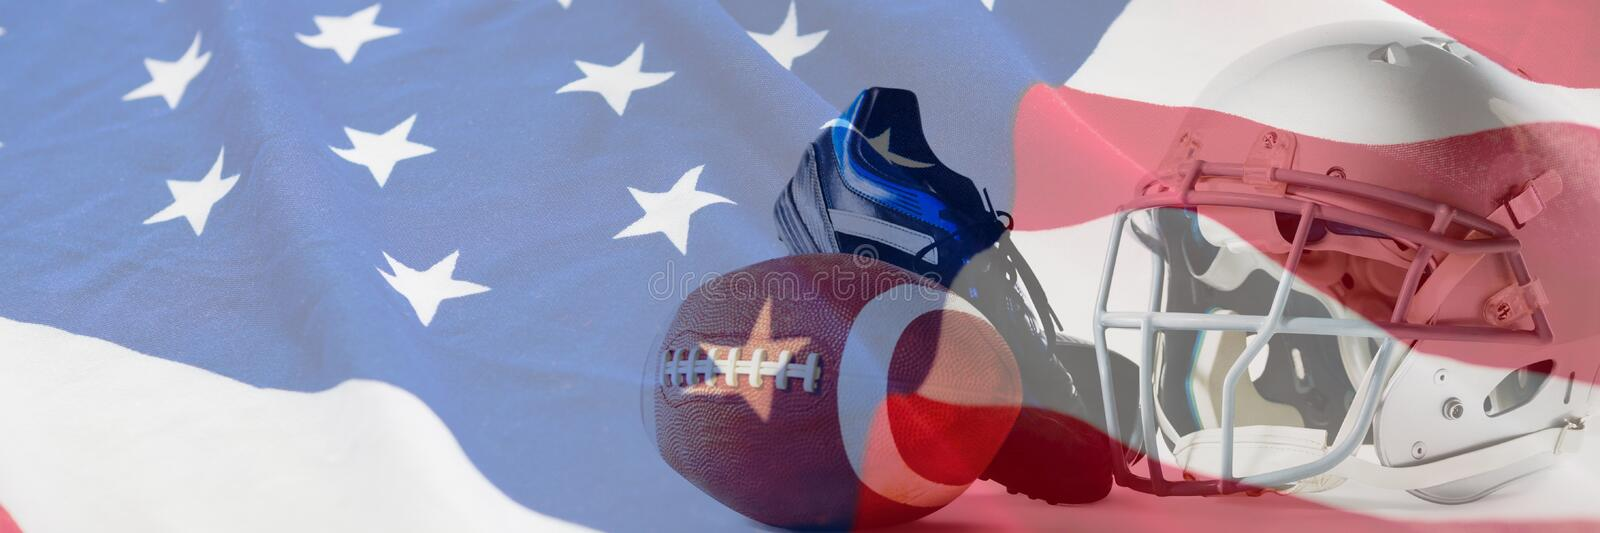 Composite image of american football with sports helmet and shoe. American football with sports helmet and shoe against american flag with stars and stripes stock photo